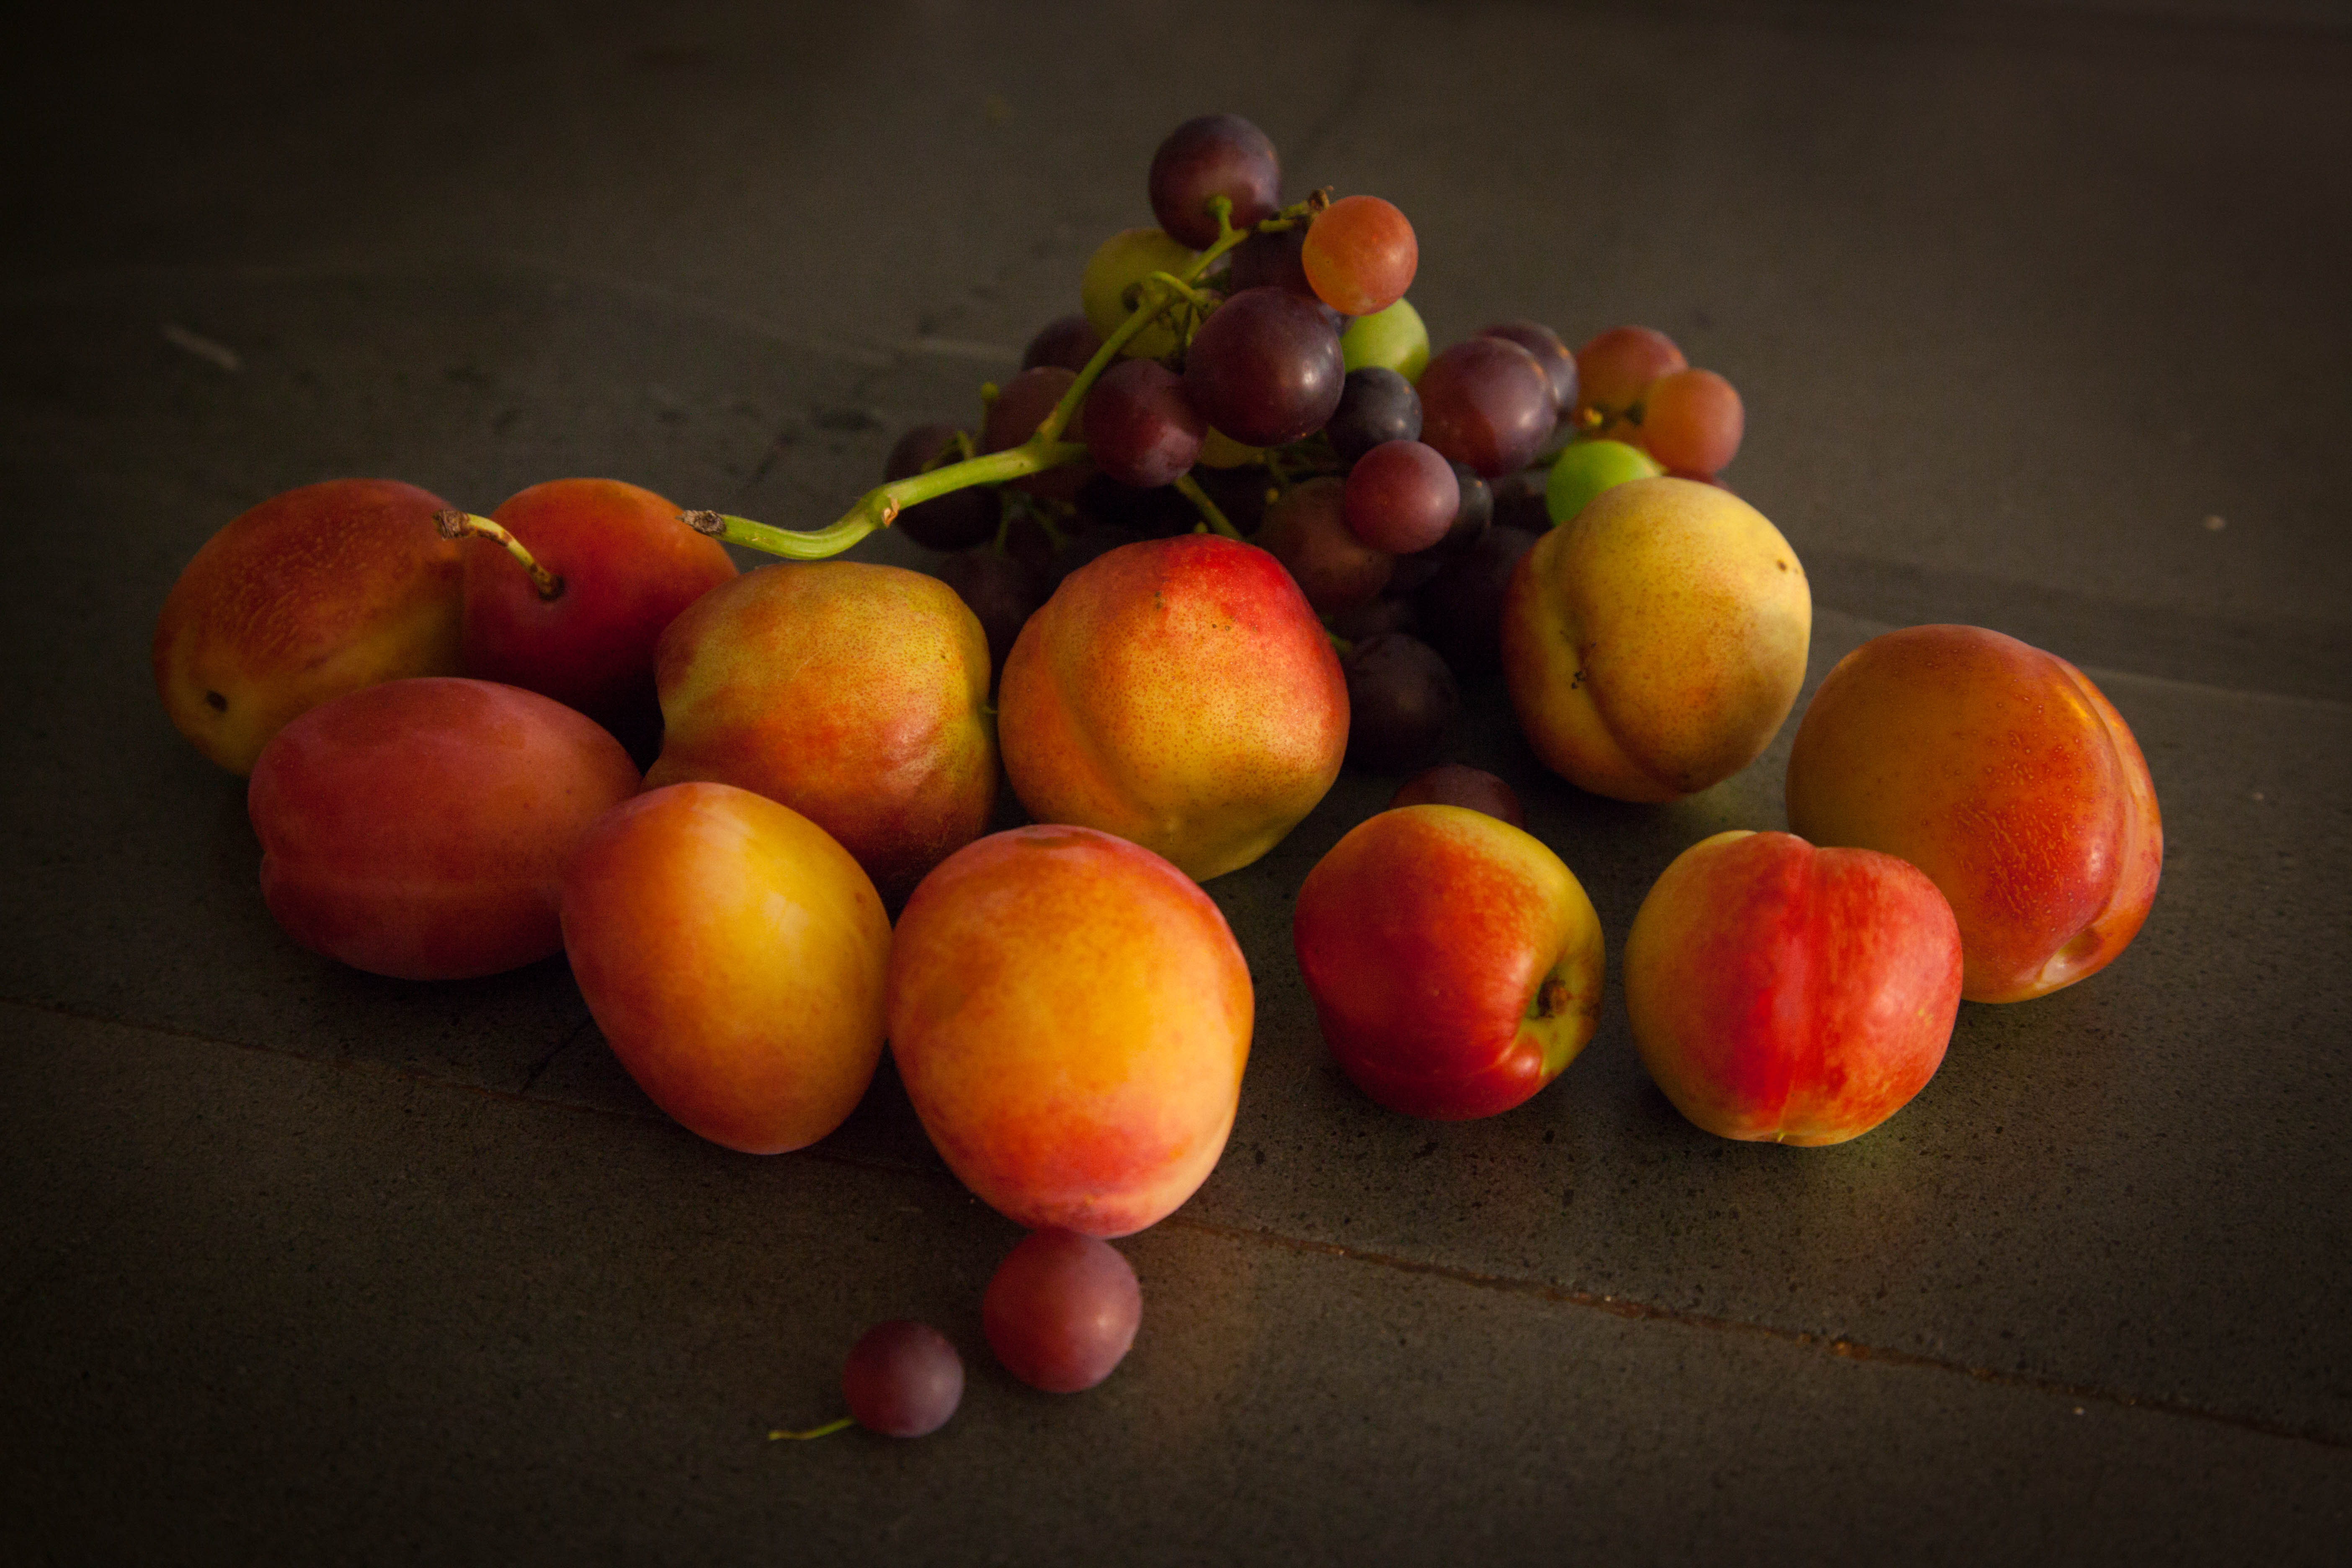 Still life with fruit – Just add pictures